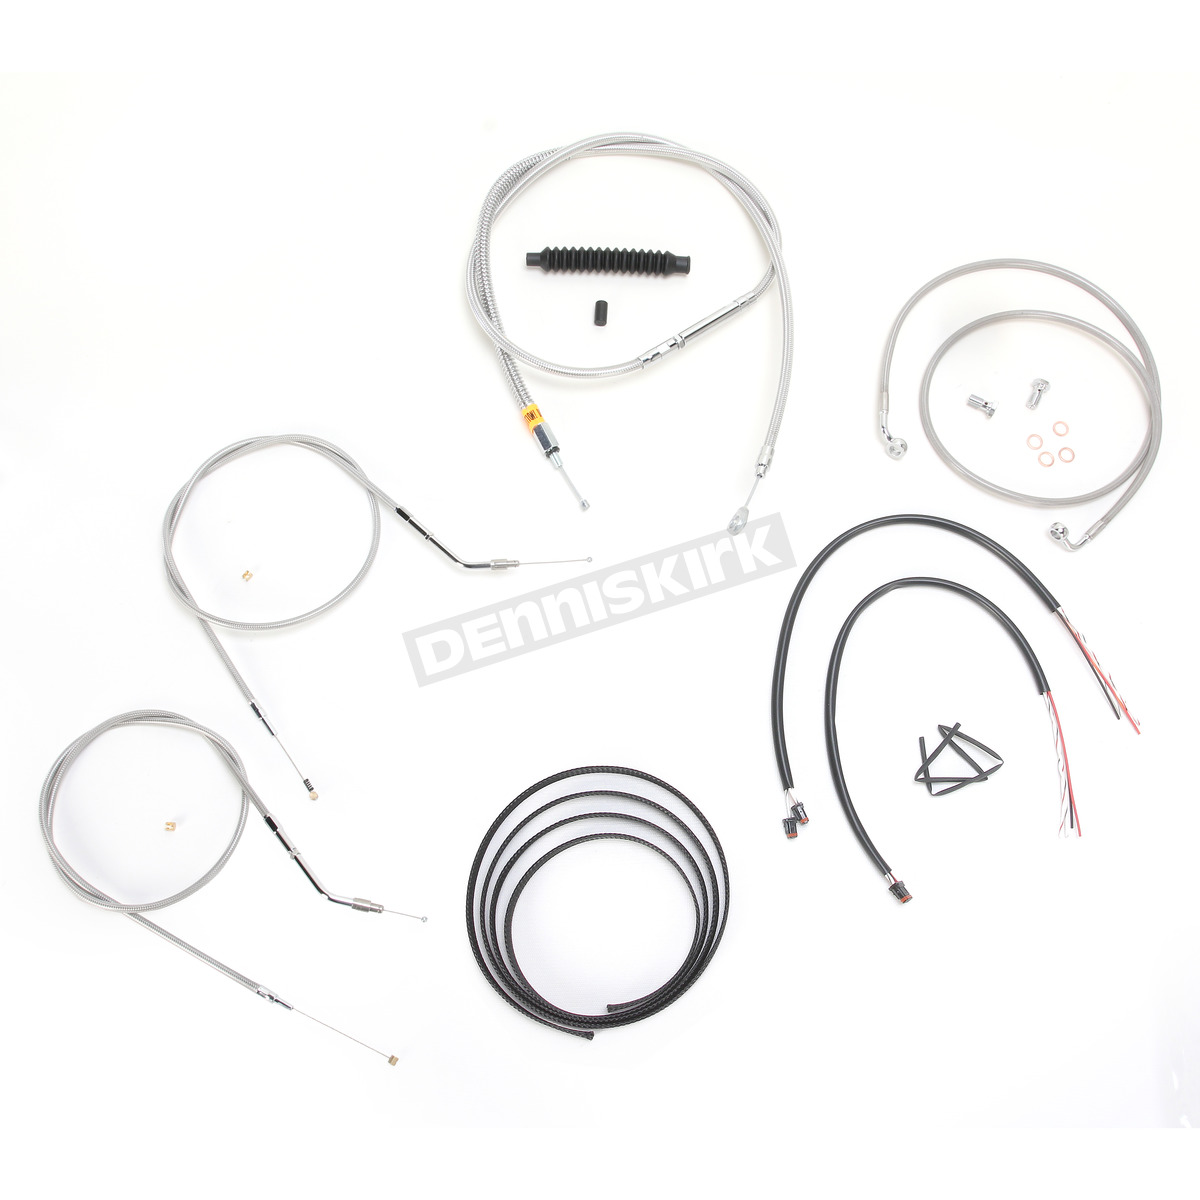 La Choppers Stainless Braided Handlebar Cable And Brake Line Kit For Use W Mini Ape Hangers